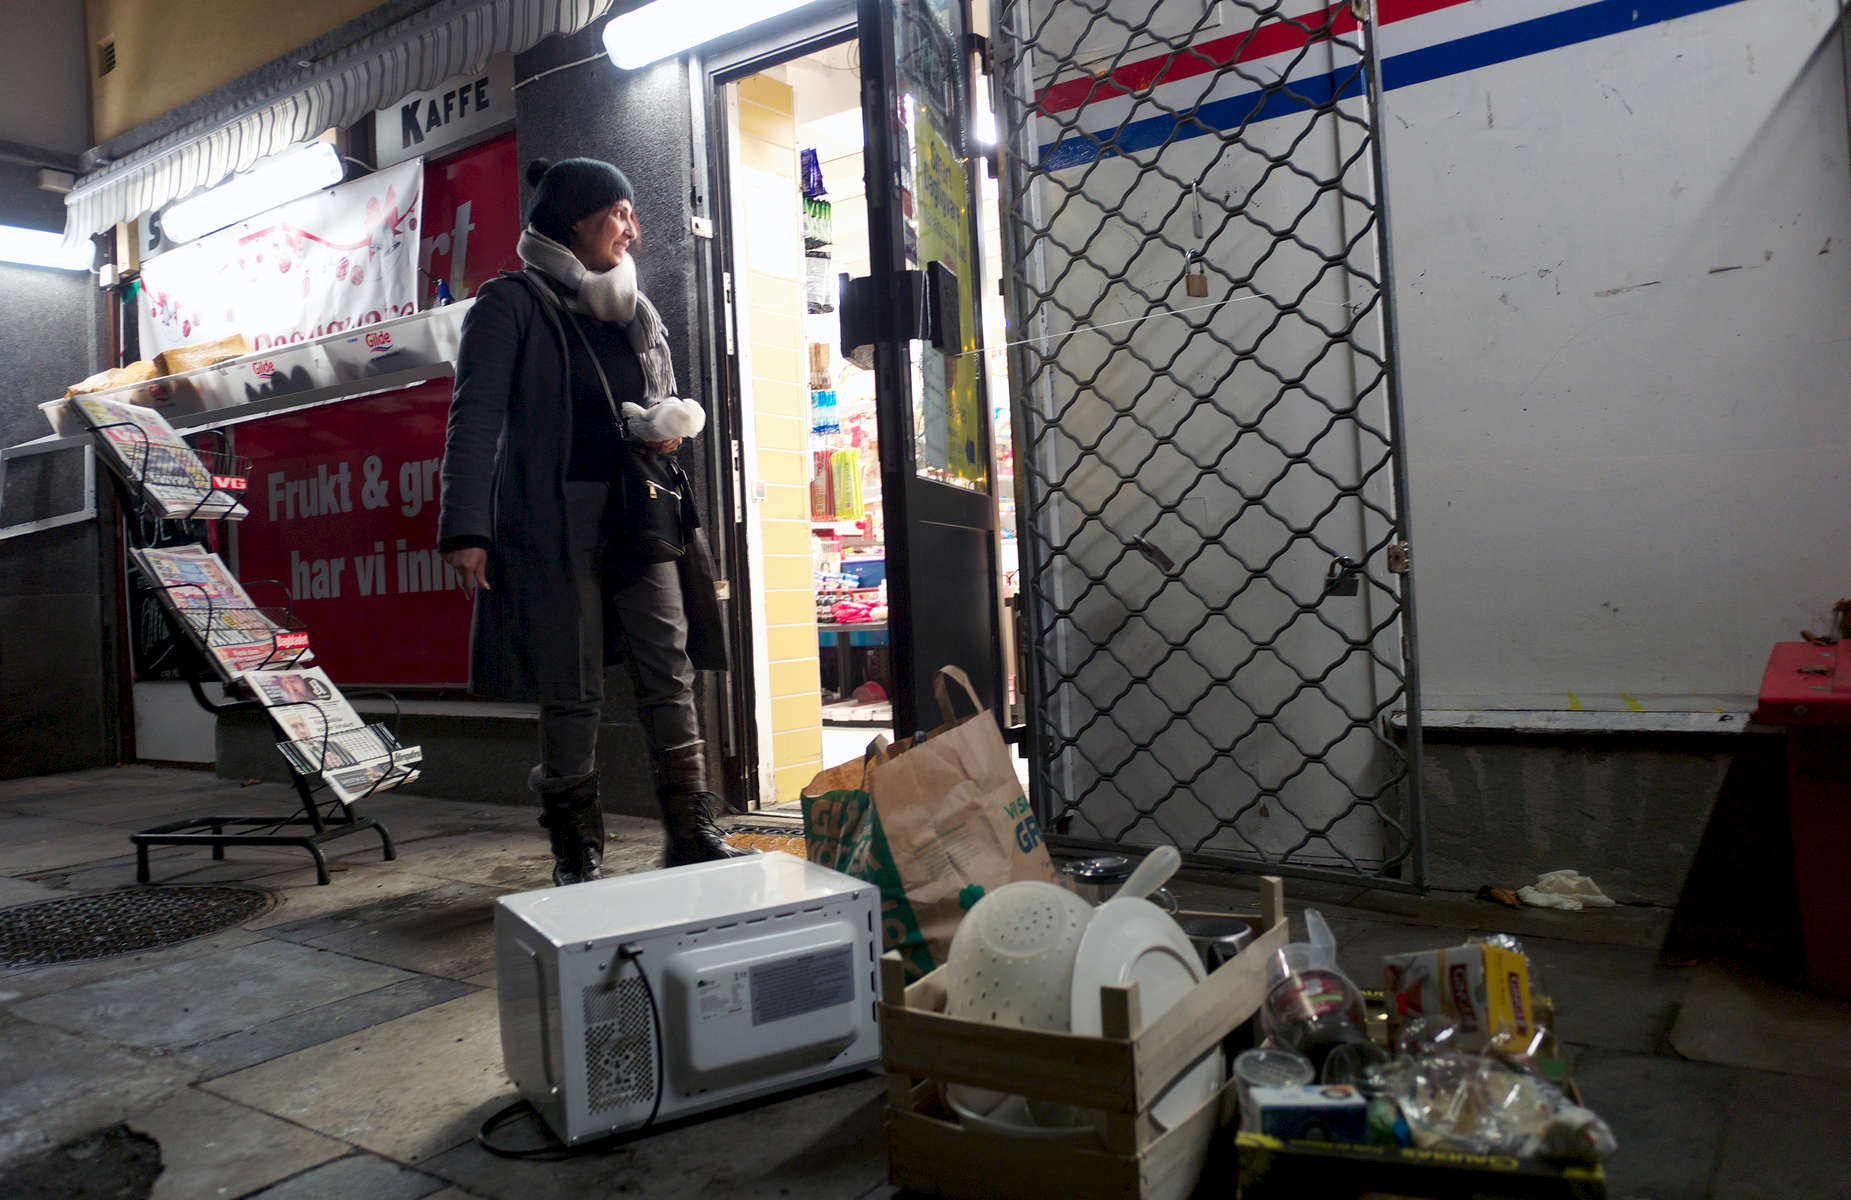 Rejected asylum seeker stands in the doorway of a convenience store with her belongings on the sidewalk.